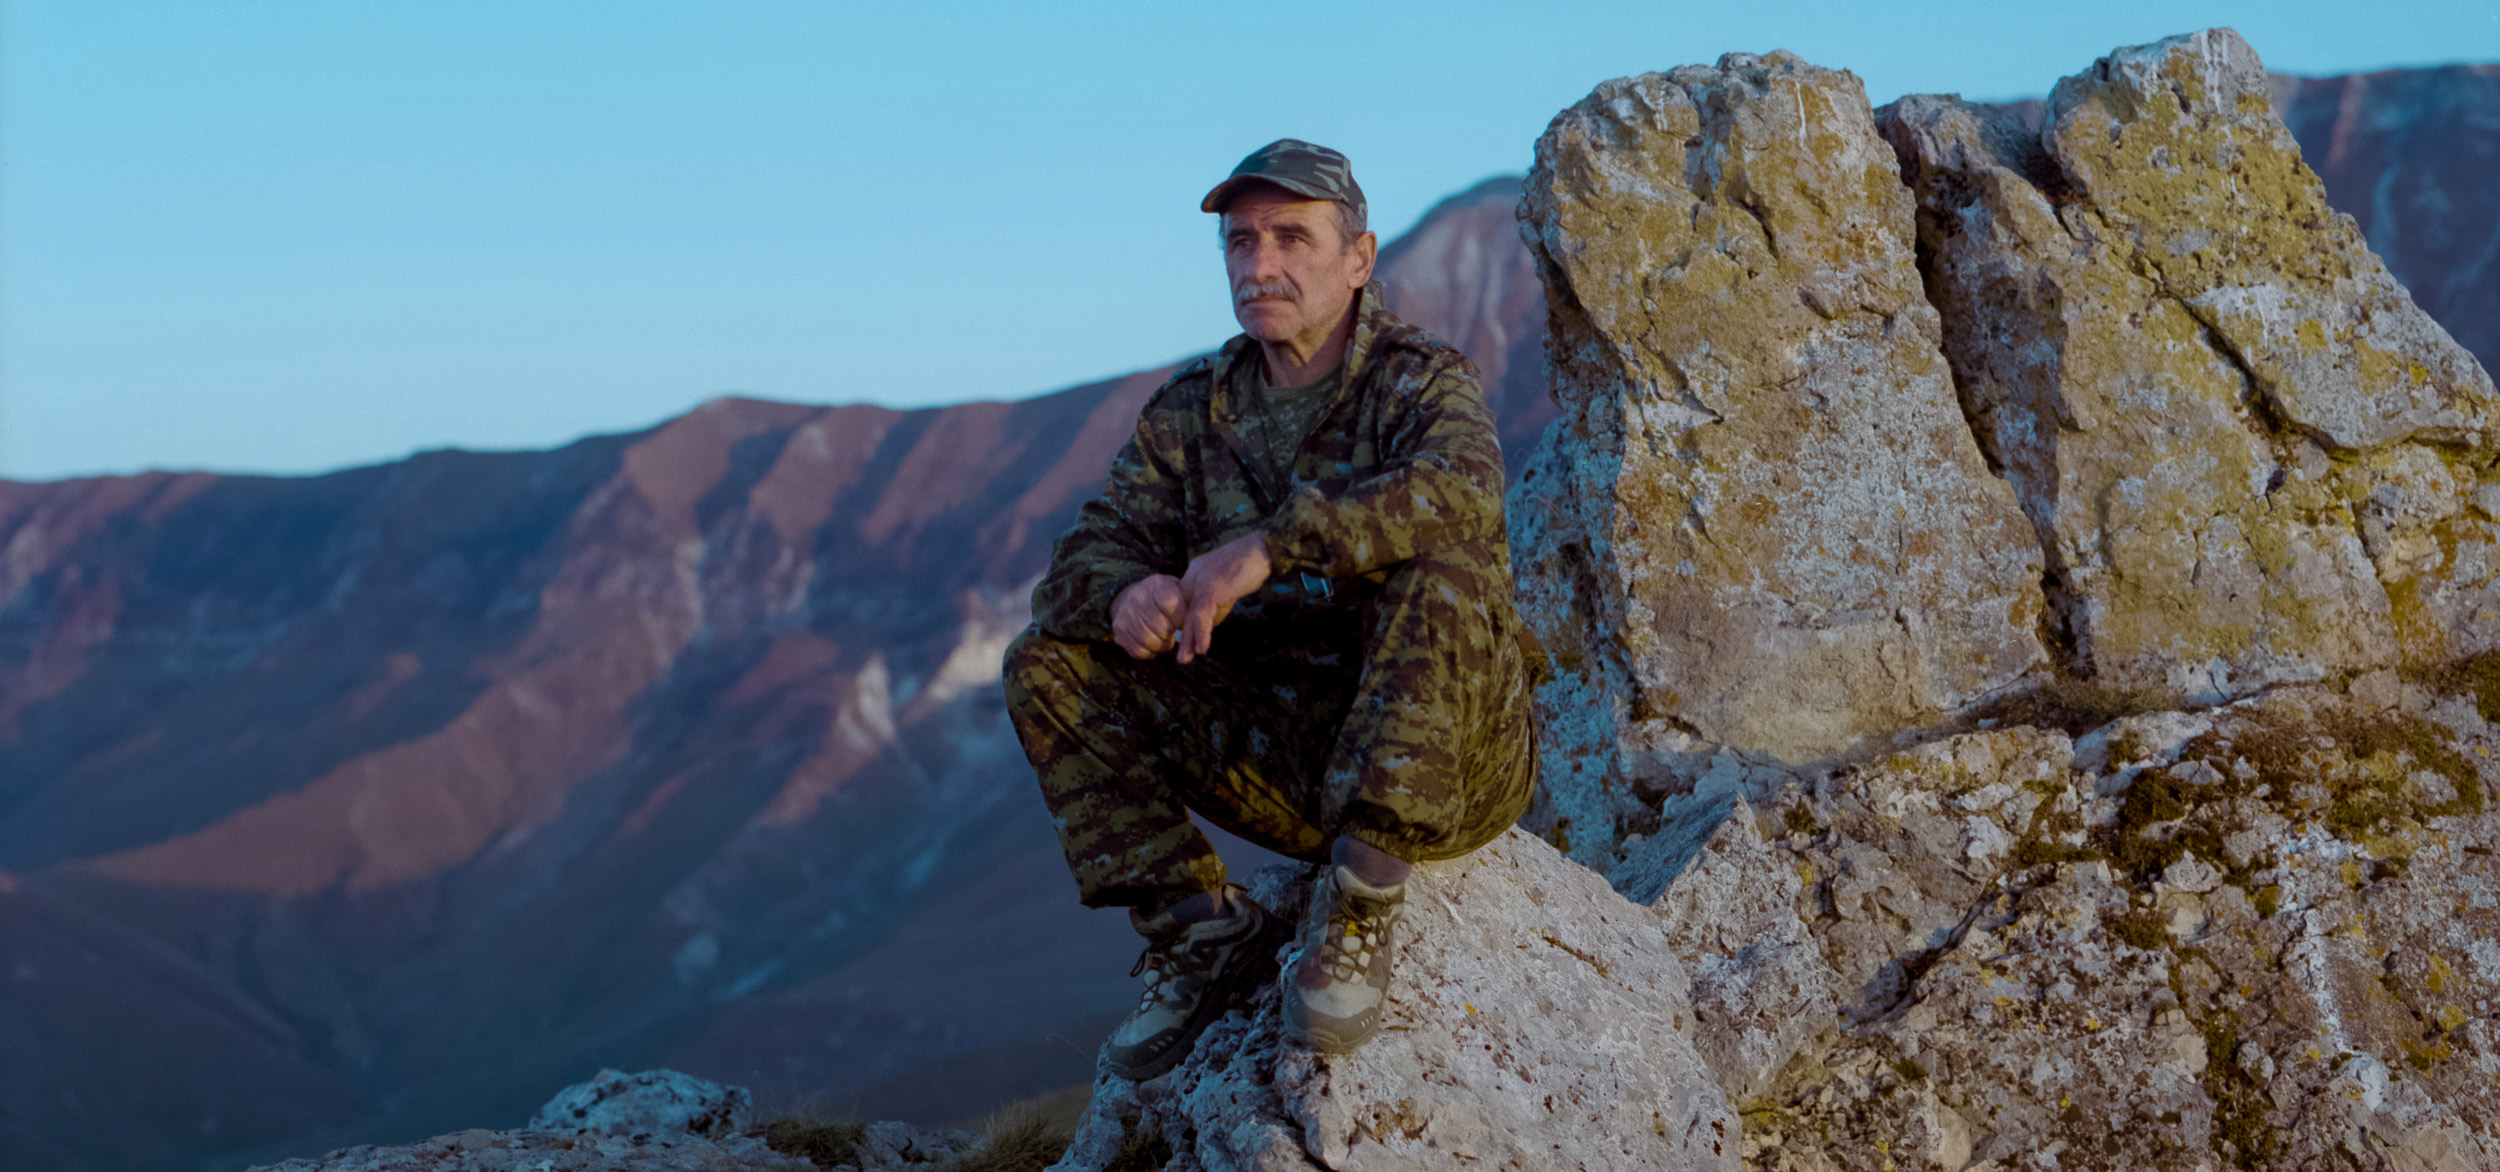 Chechnya's wildlife has been ravaged by war. This man is helping it to heal